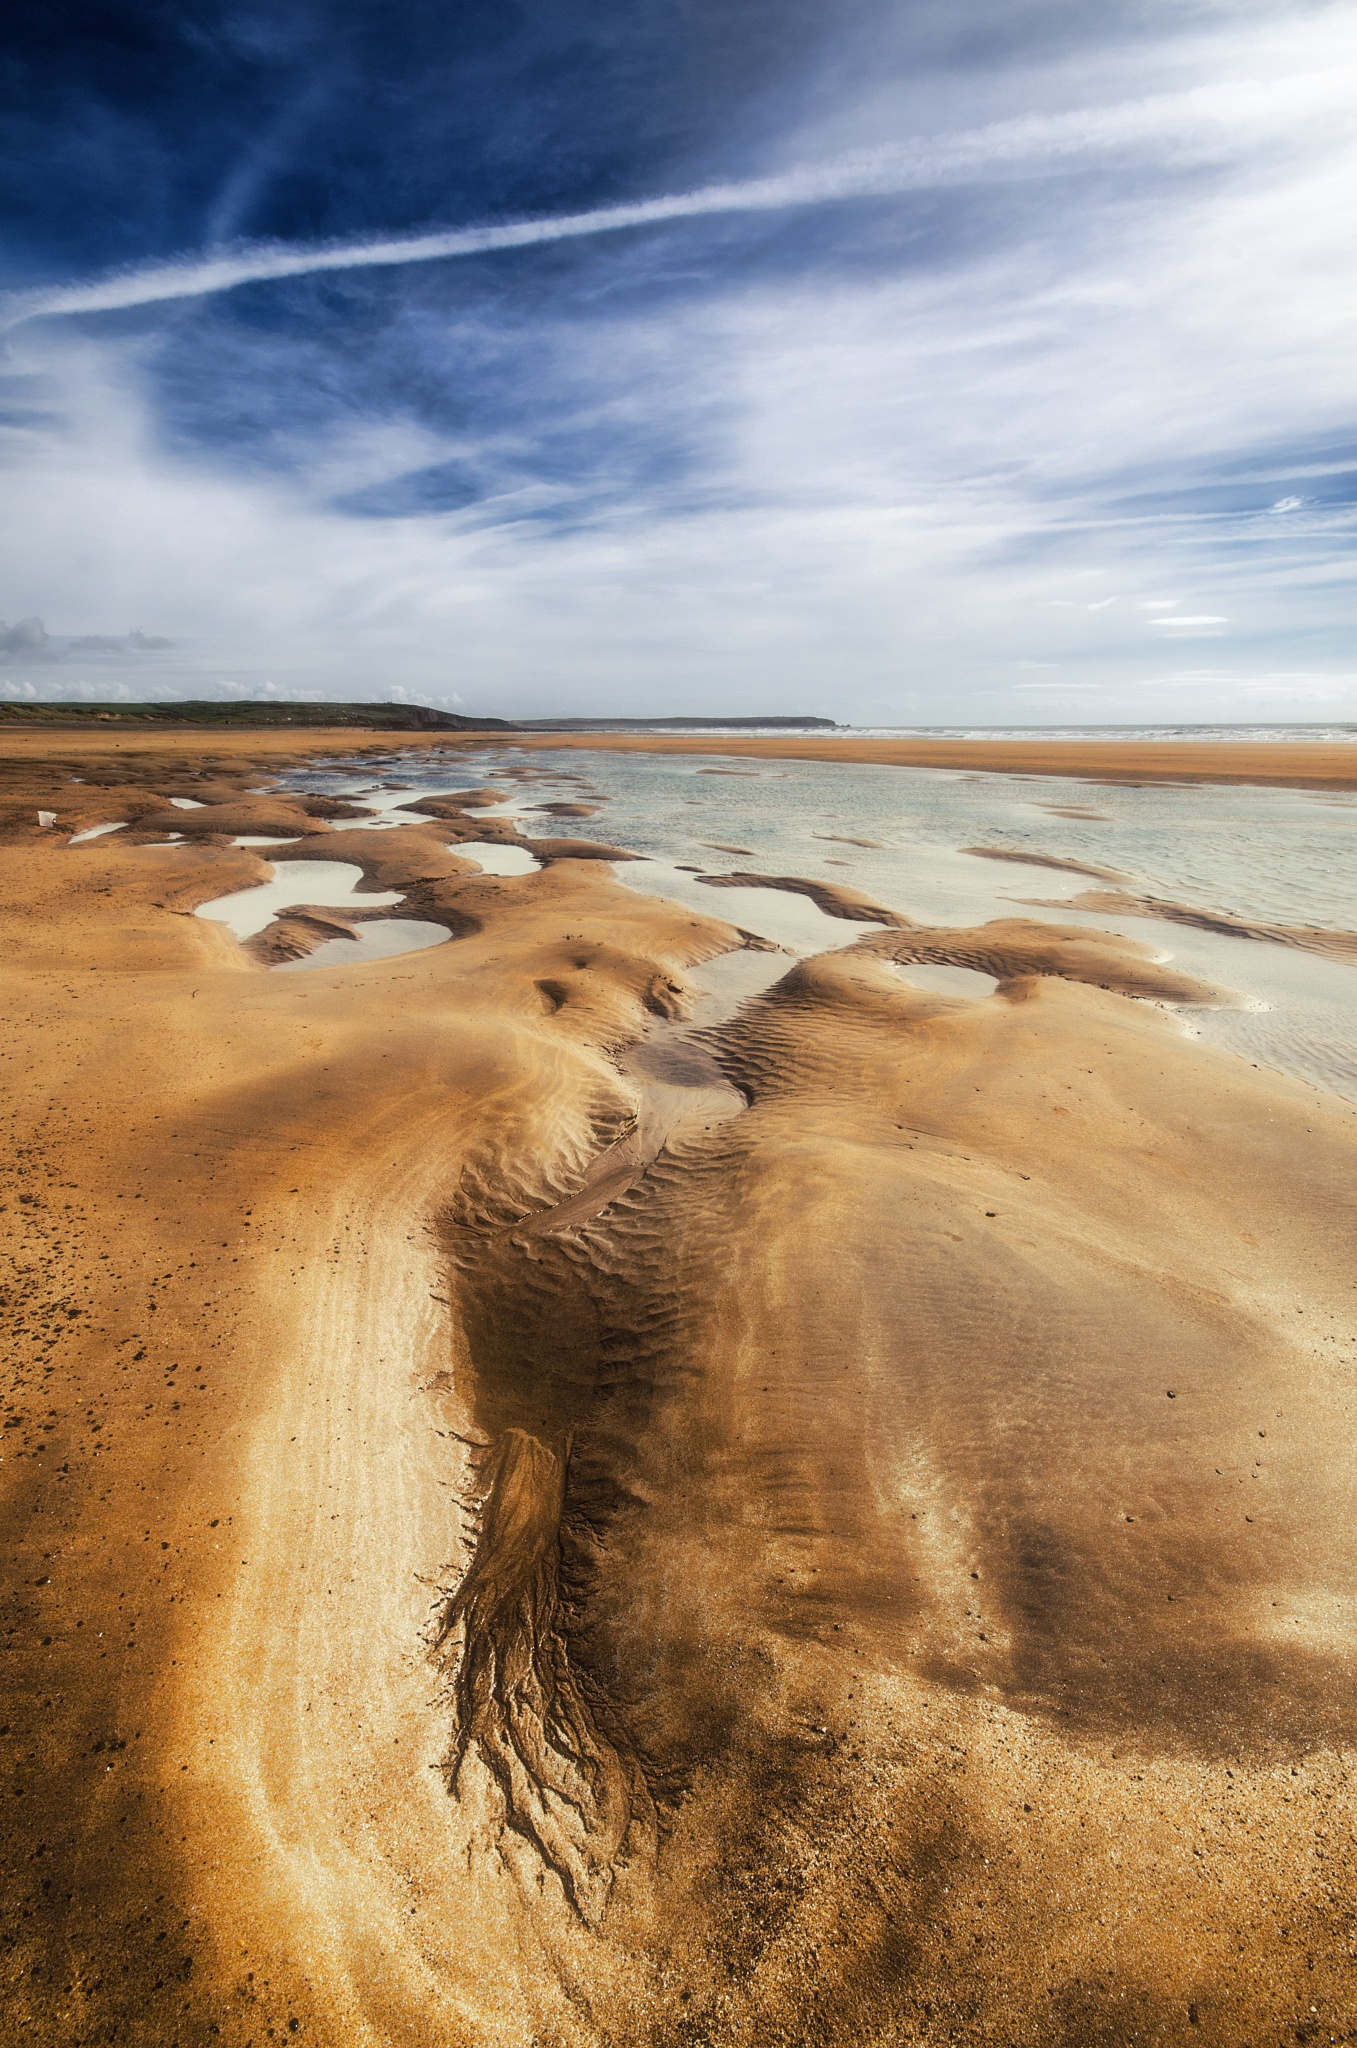 Channels in the Sand by Chris Sweet